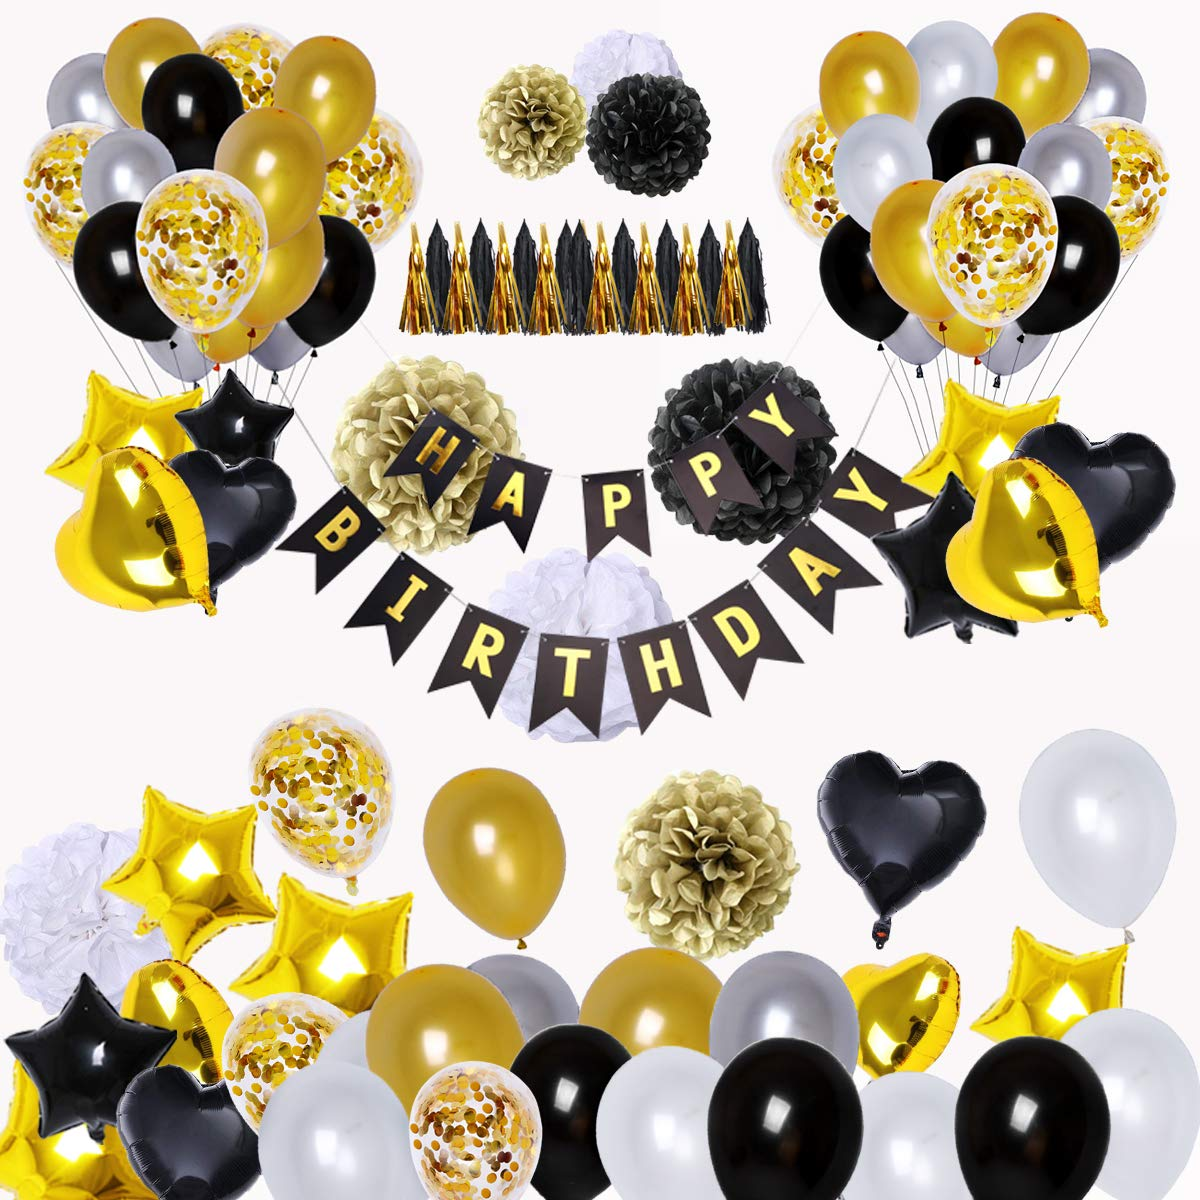 BRT Black and Gold Party Decorations(90Pcs) Happy Birthday Banner Star Heart Foil Balloons 18th 20th 30th 40th 50th 60th 70th Birthday Decorations Birthday Balloons